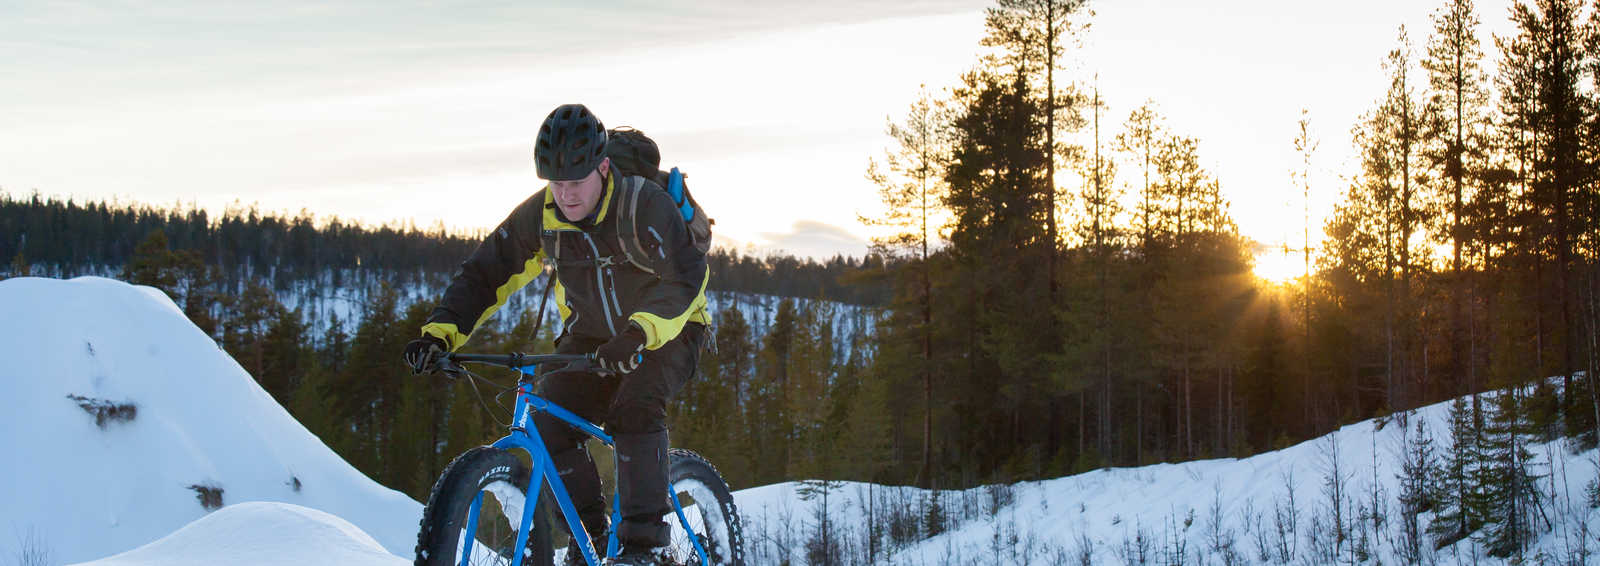 Cycling in Oulanka National Park - Finland